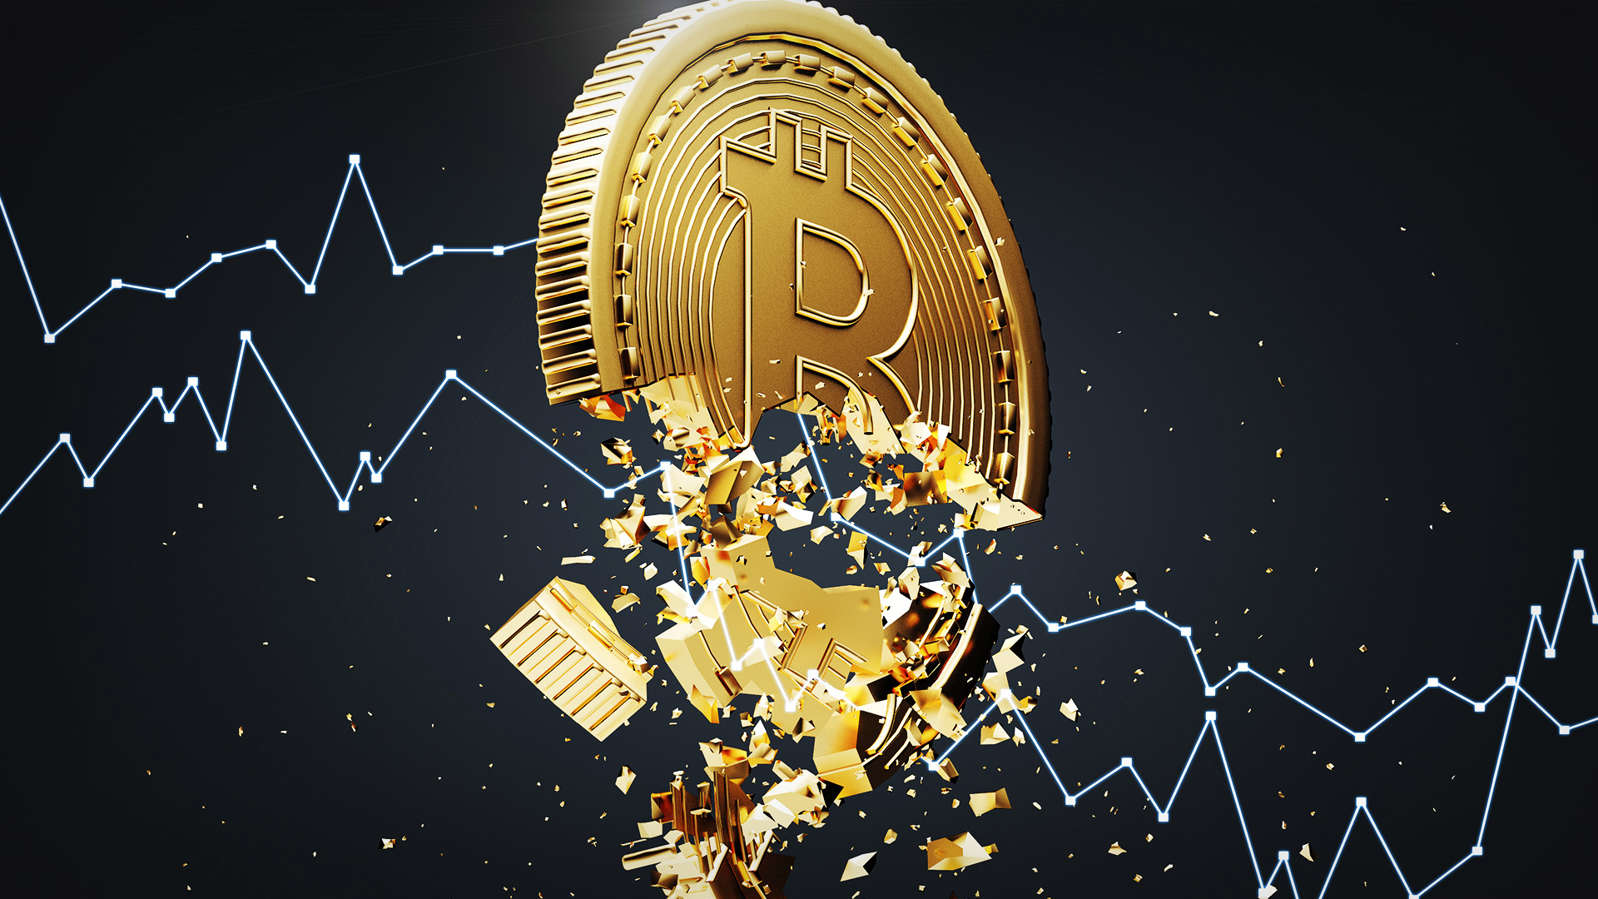 Is Bitcoin Safe to Buy After Its Latest Bout of Volatility?